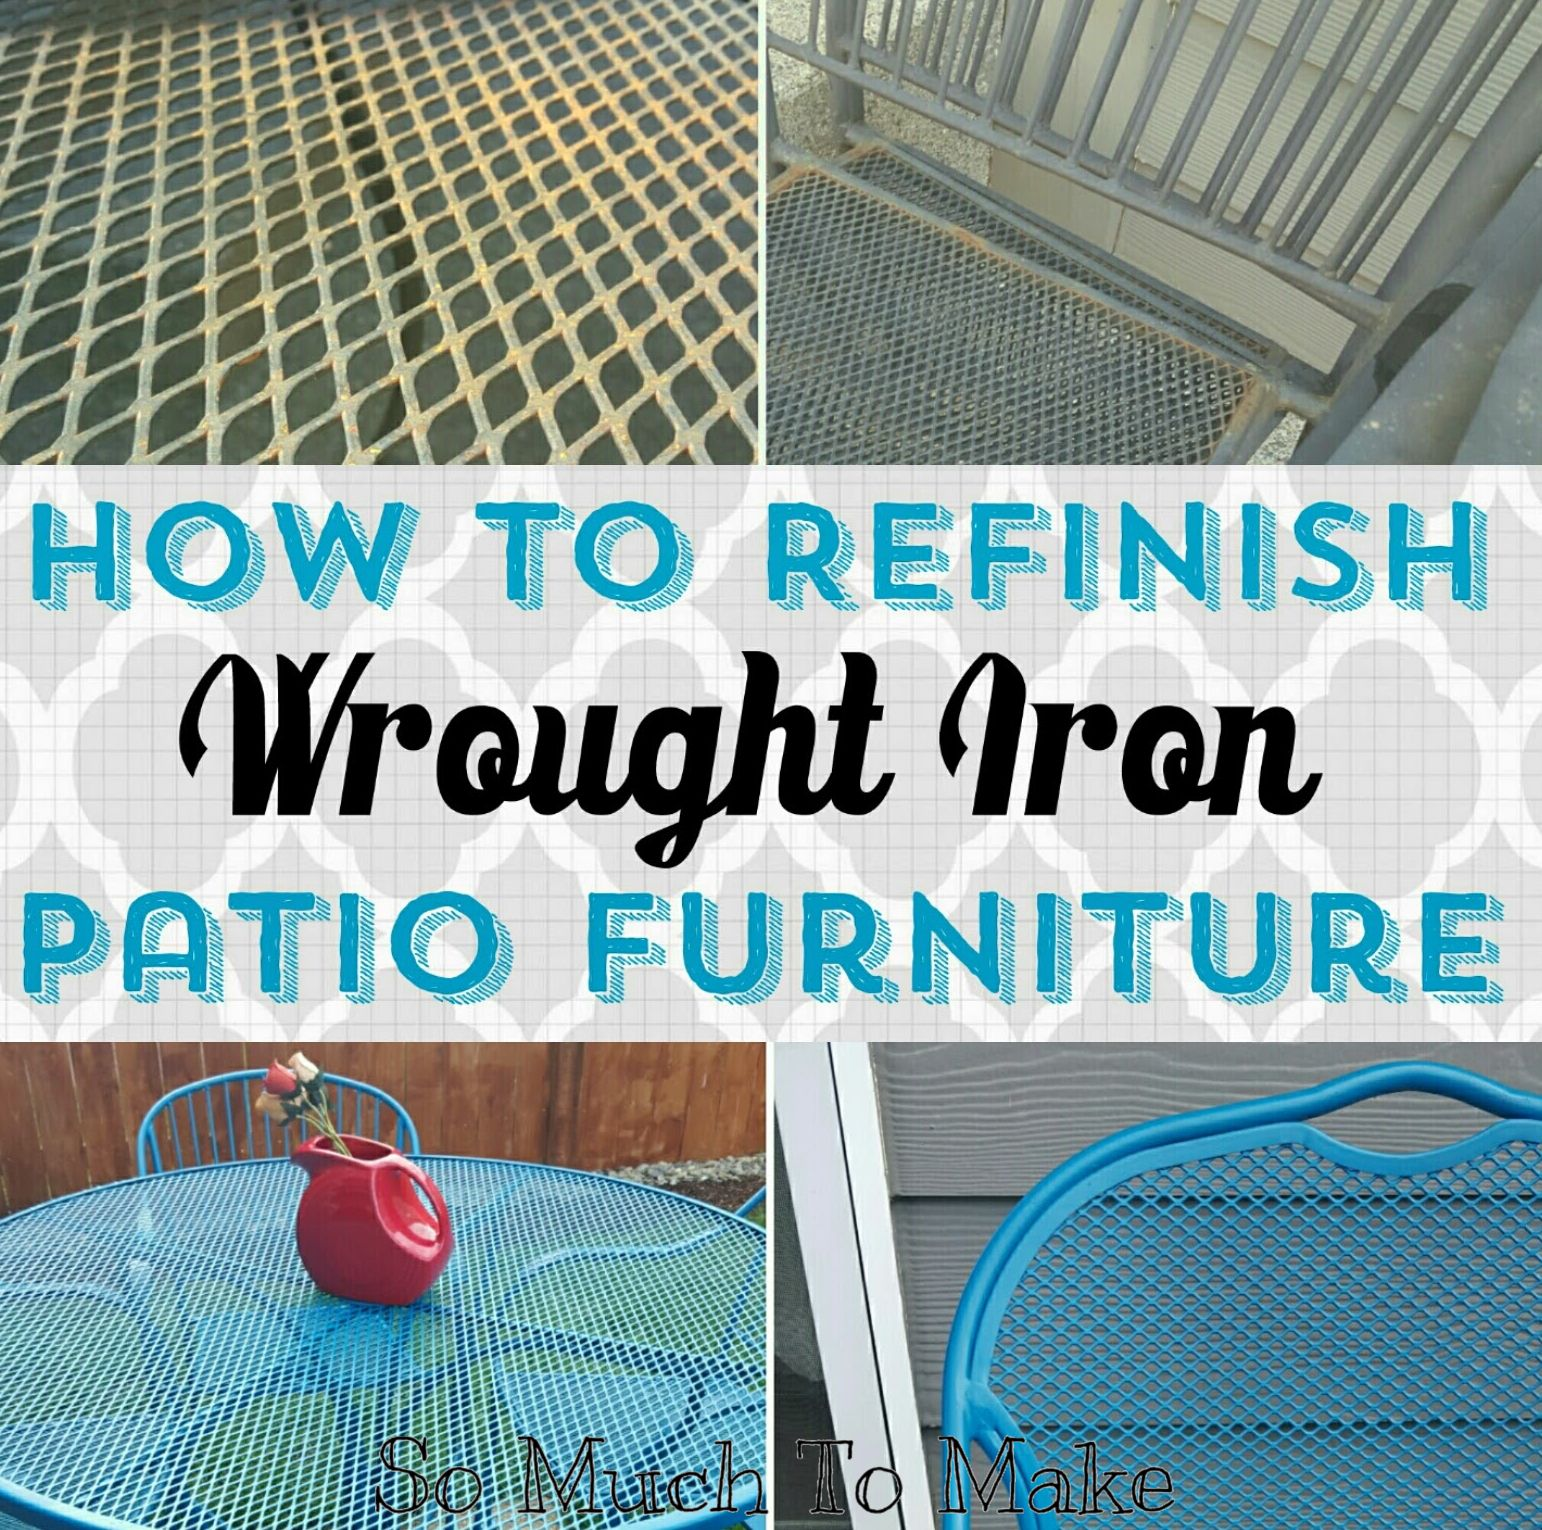 How to Refinish Wrought Iron Patio Furniture | Iron patio furniture ...